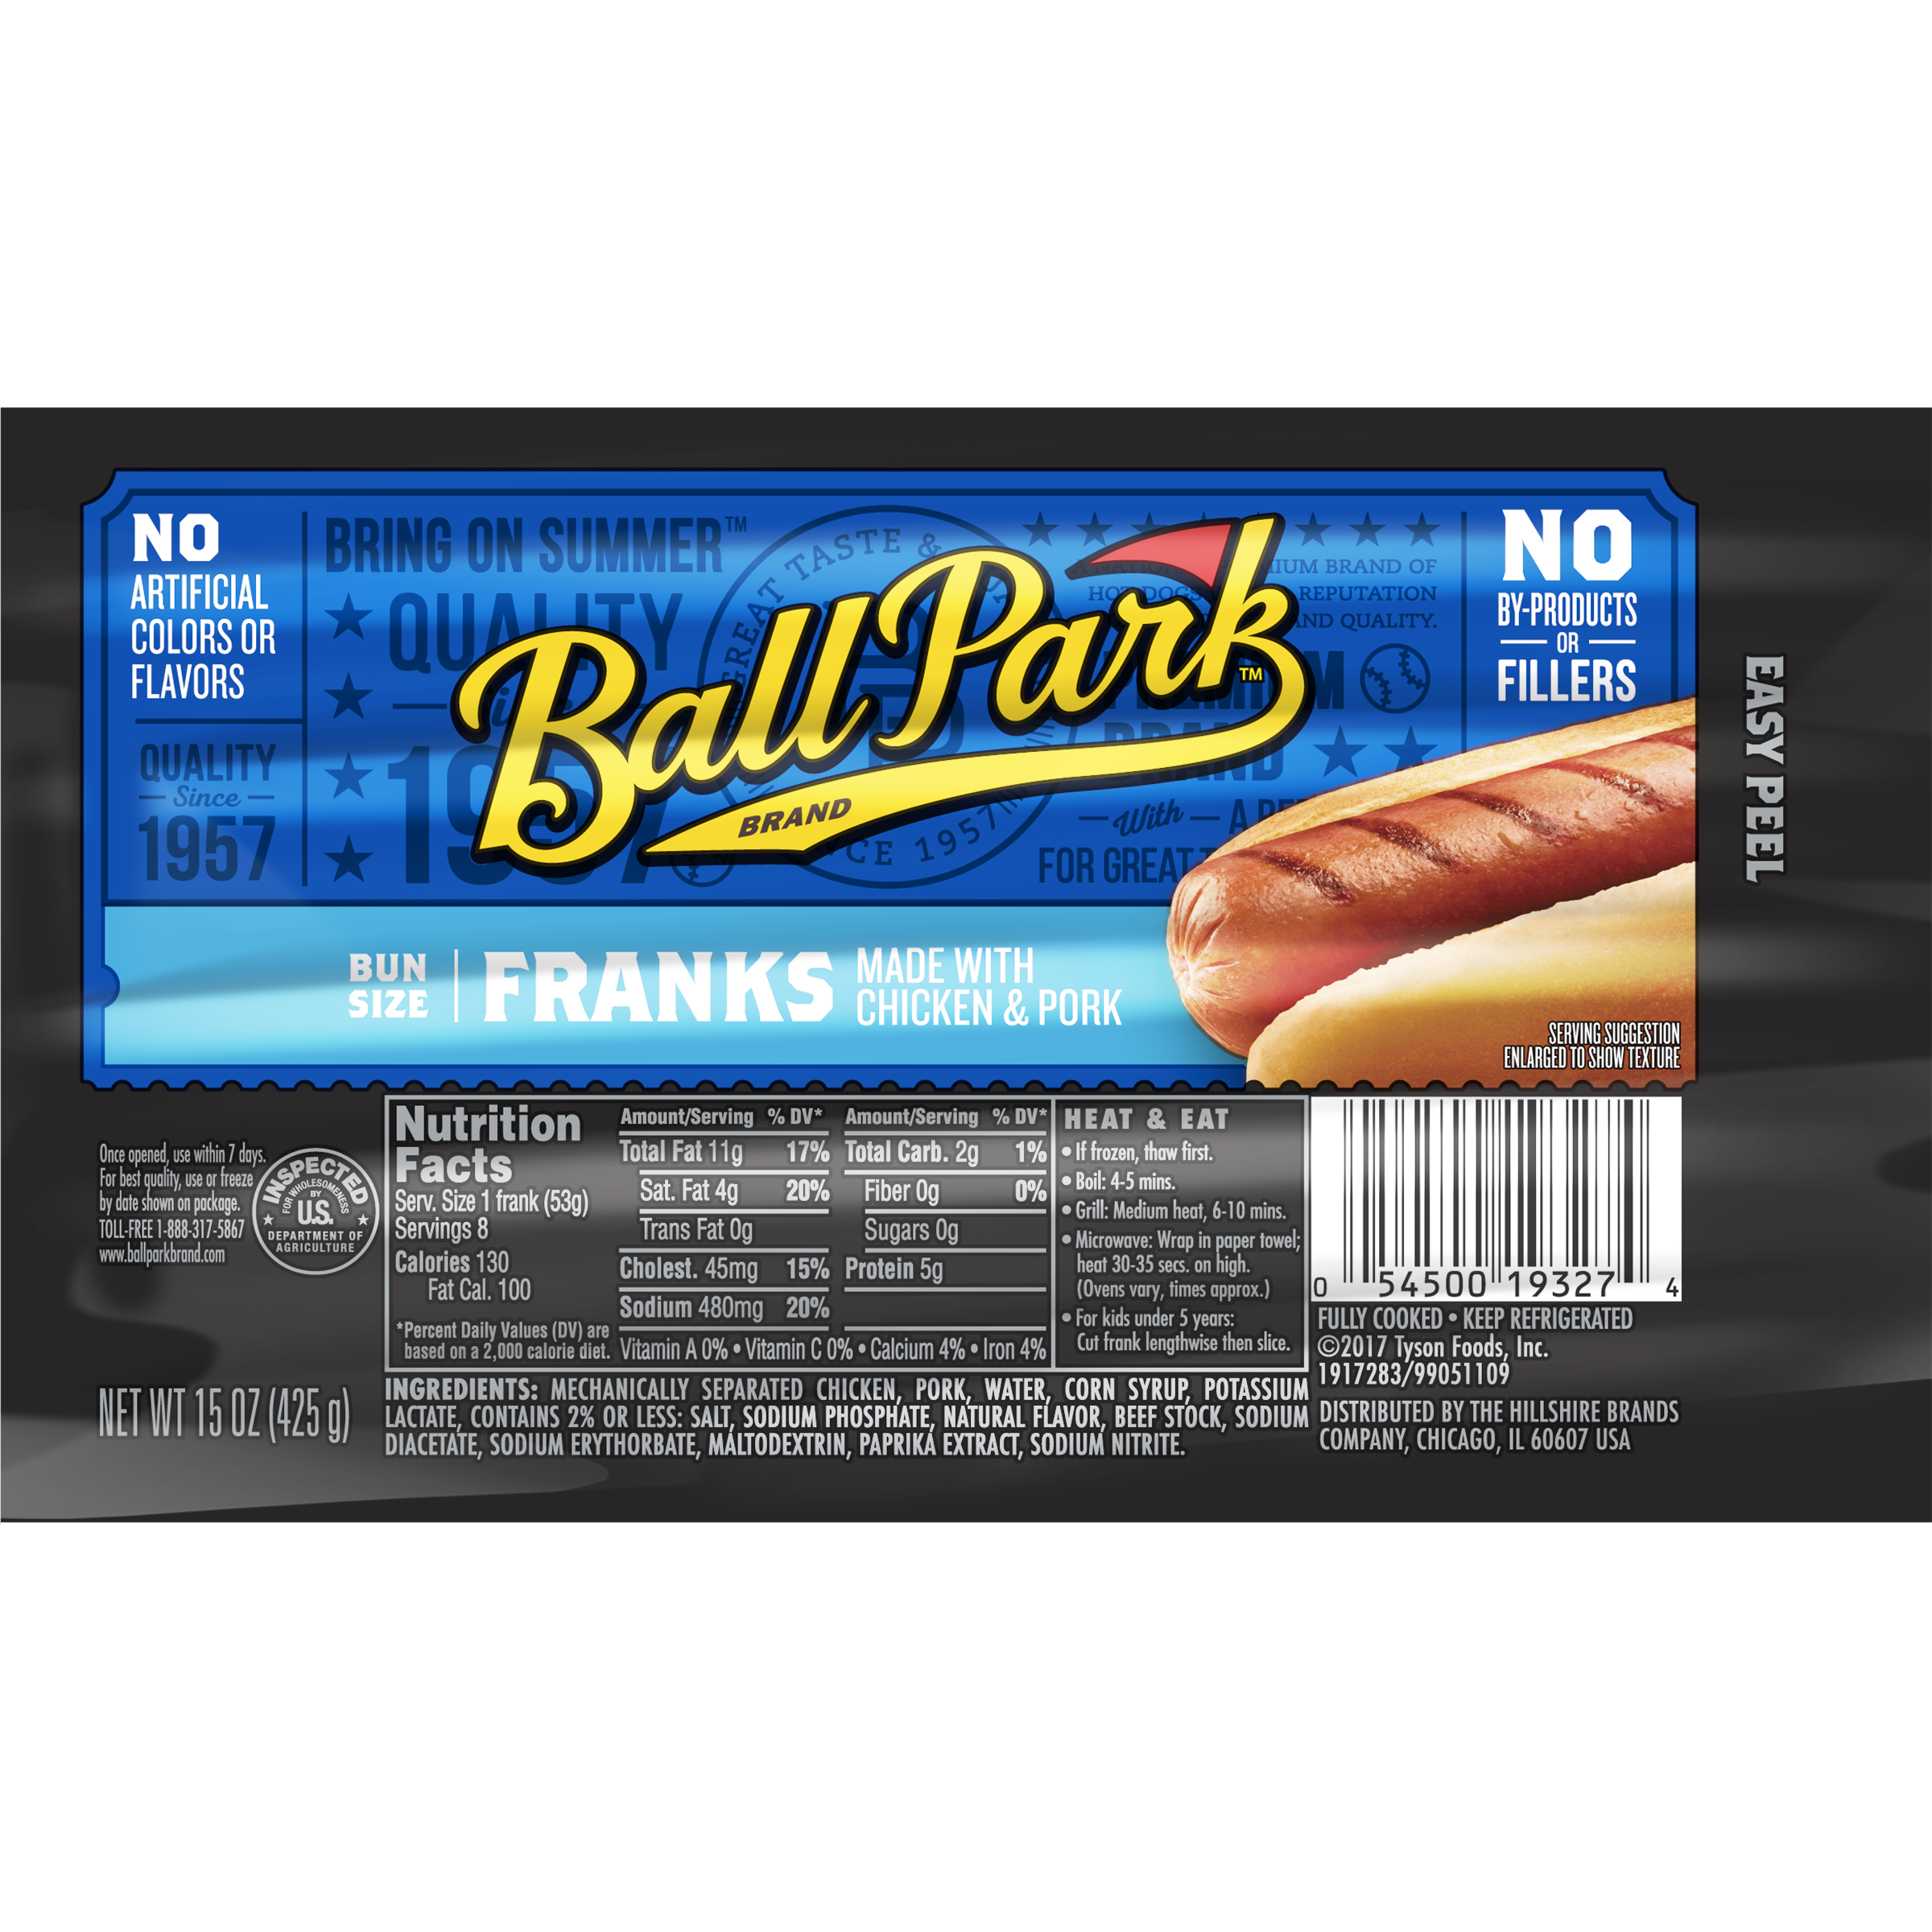 Ball Park® Classic Franks, Bunsize Length, 8 Count